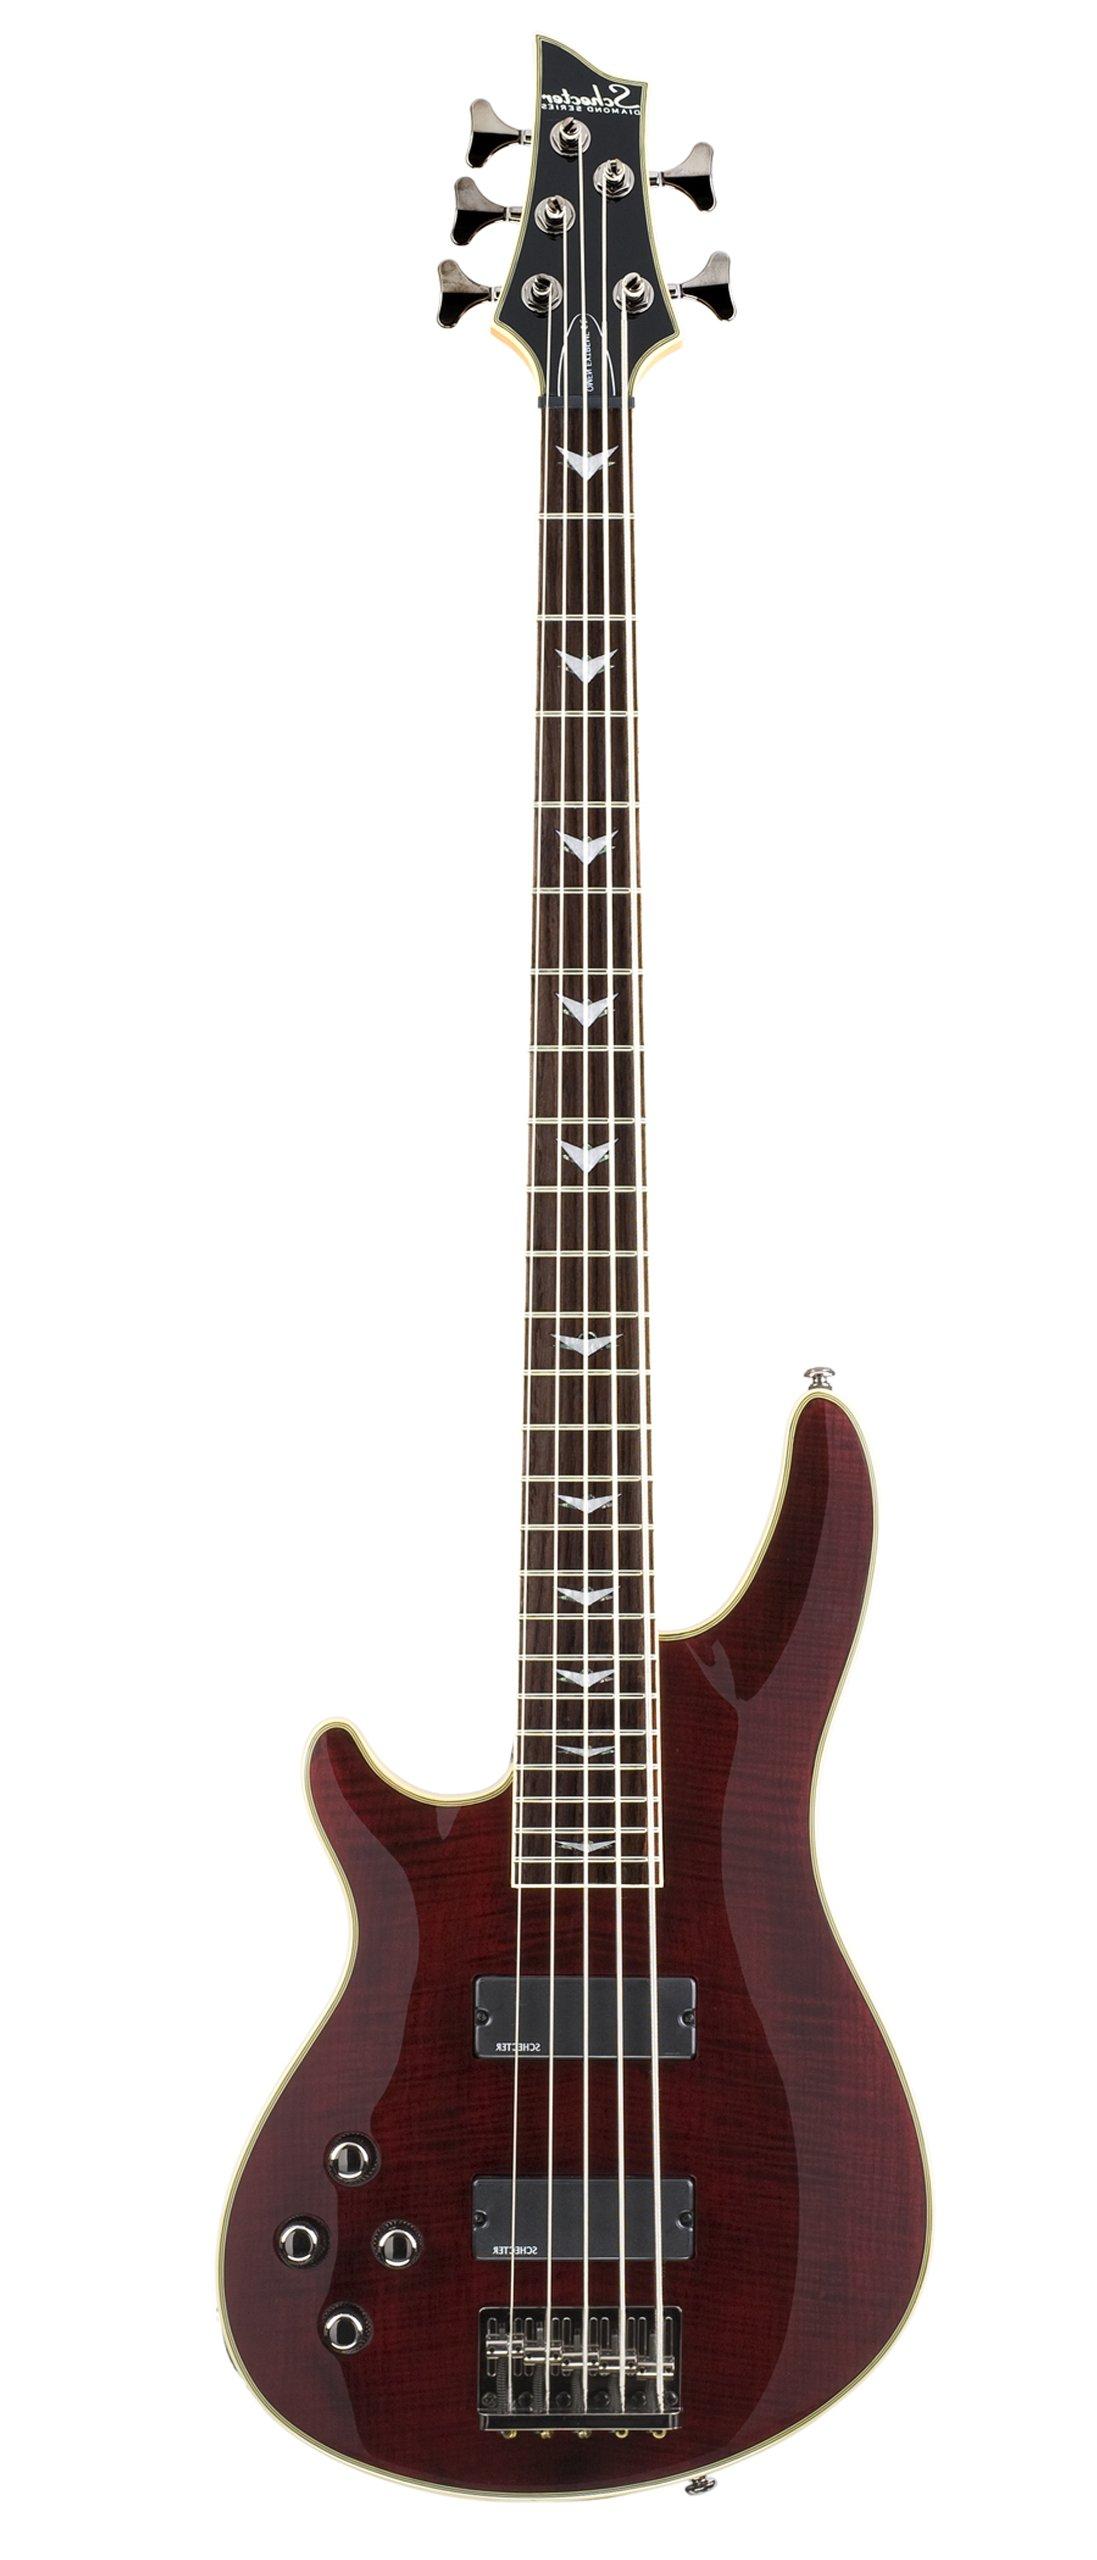 Schecter Omen Extreme-5 Bass Guitar (Black Cherry, Left Handed)